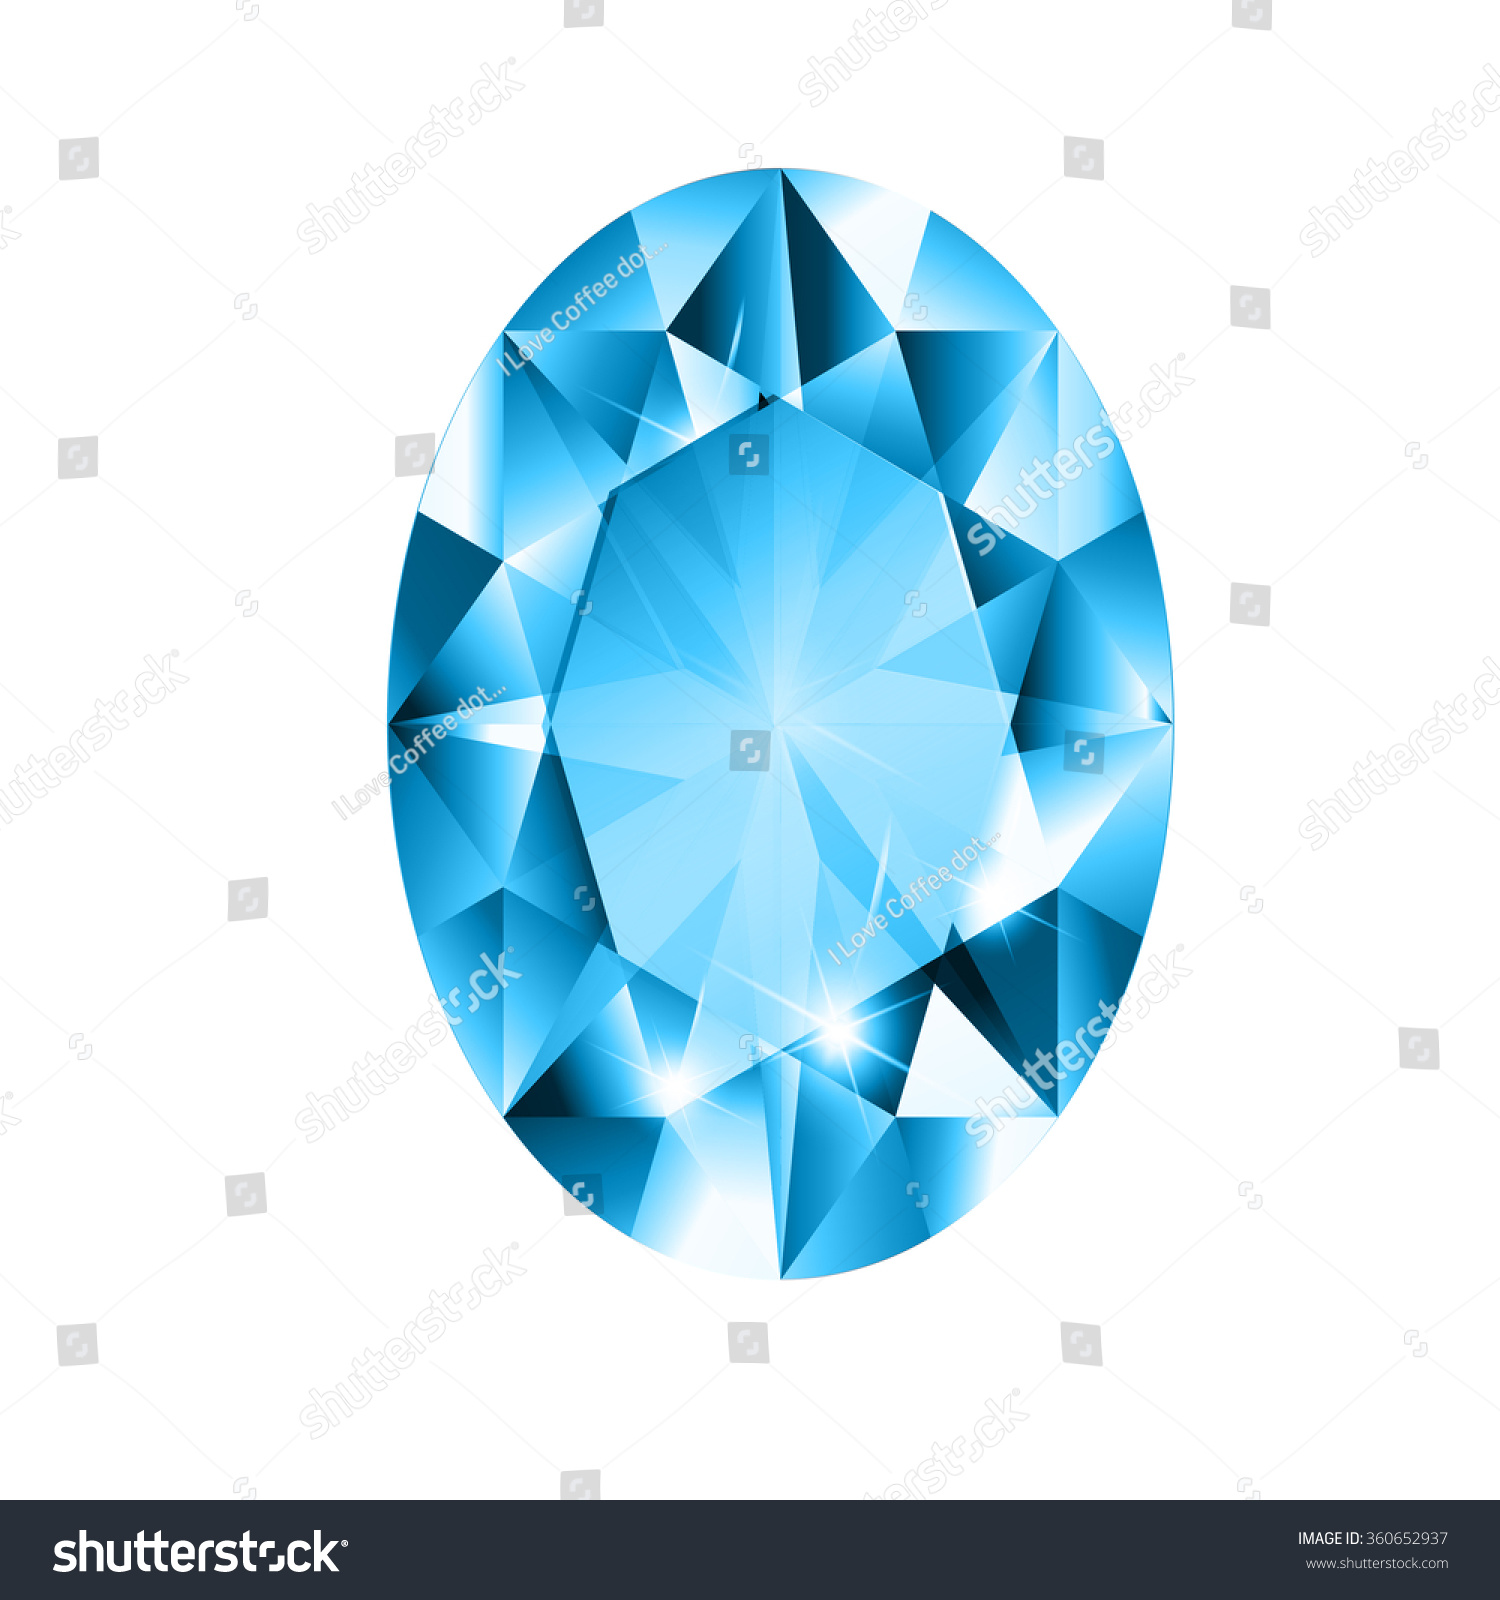 dice color colored investment blue what fancy by diamond guide of for the are colors hues diamonds